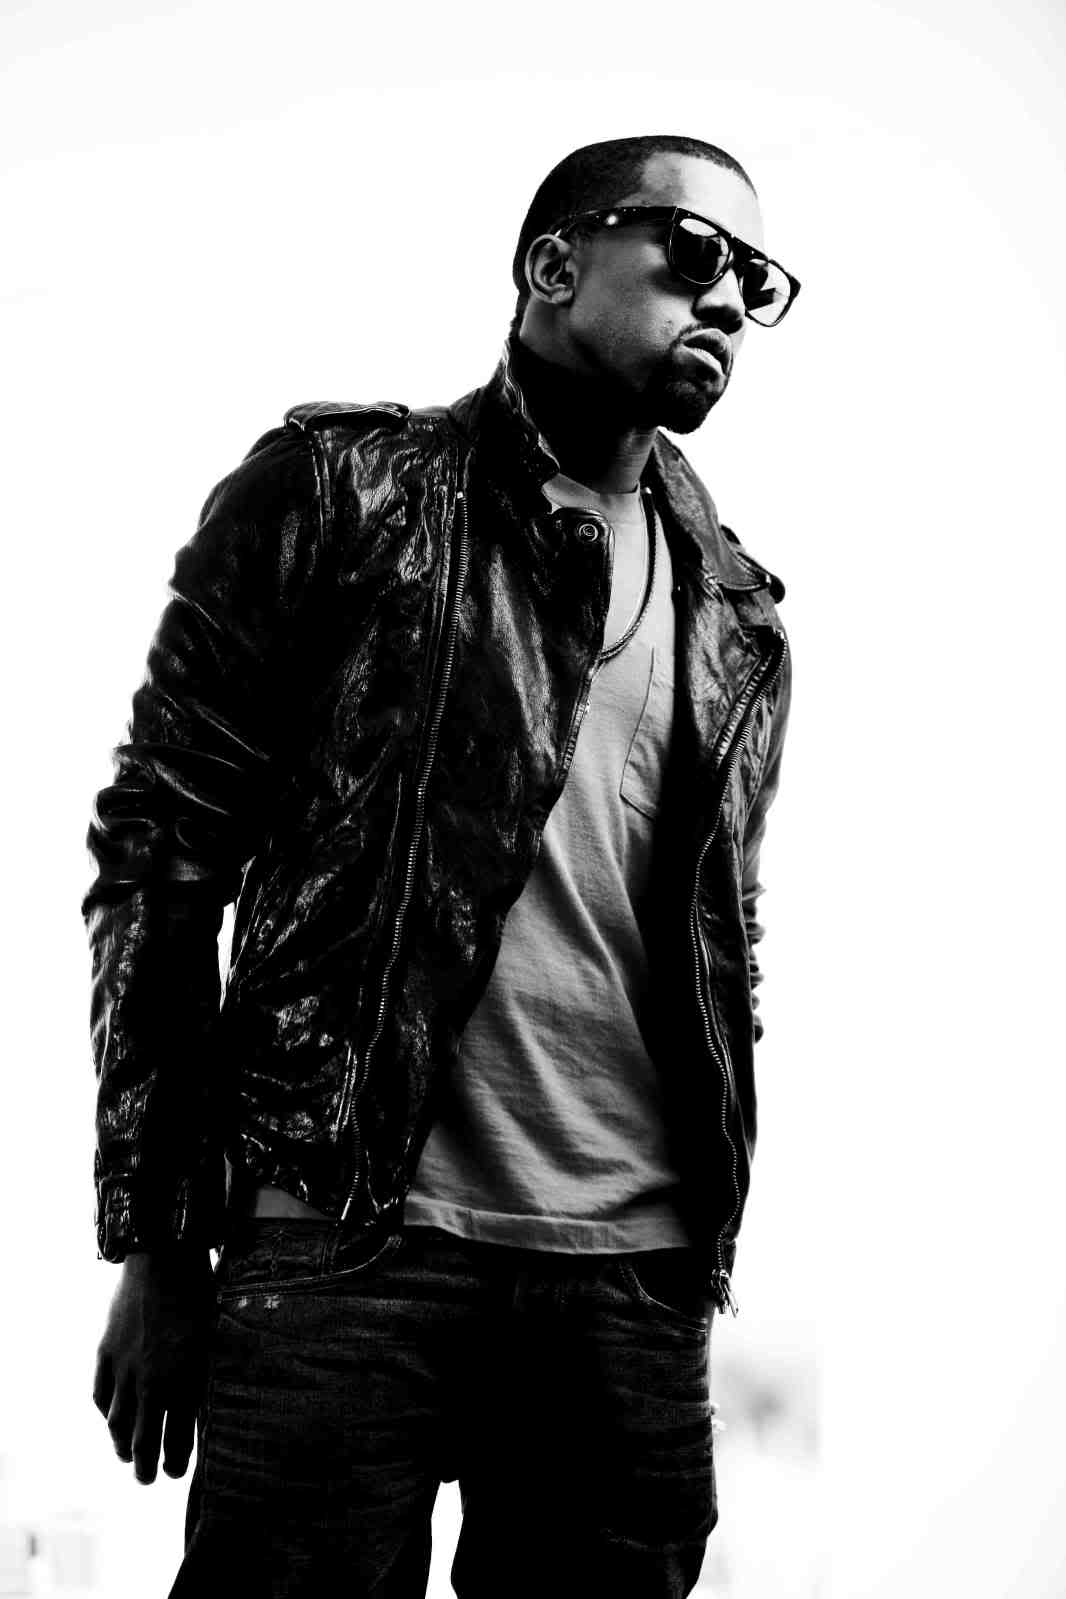 Kanye west iphone wallpaper tumblr - Kanye West Wallpaper Iphone 1